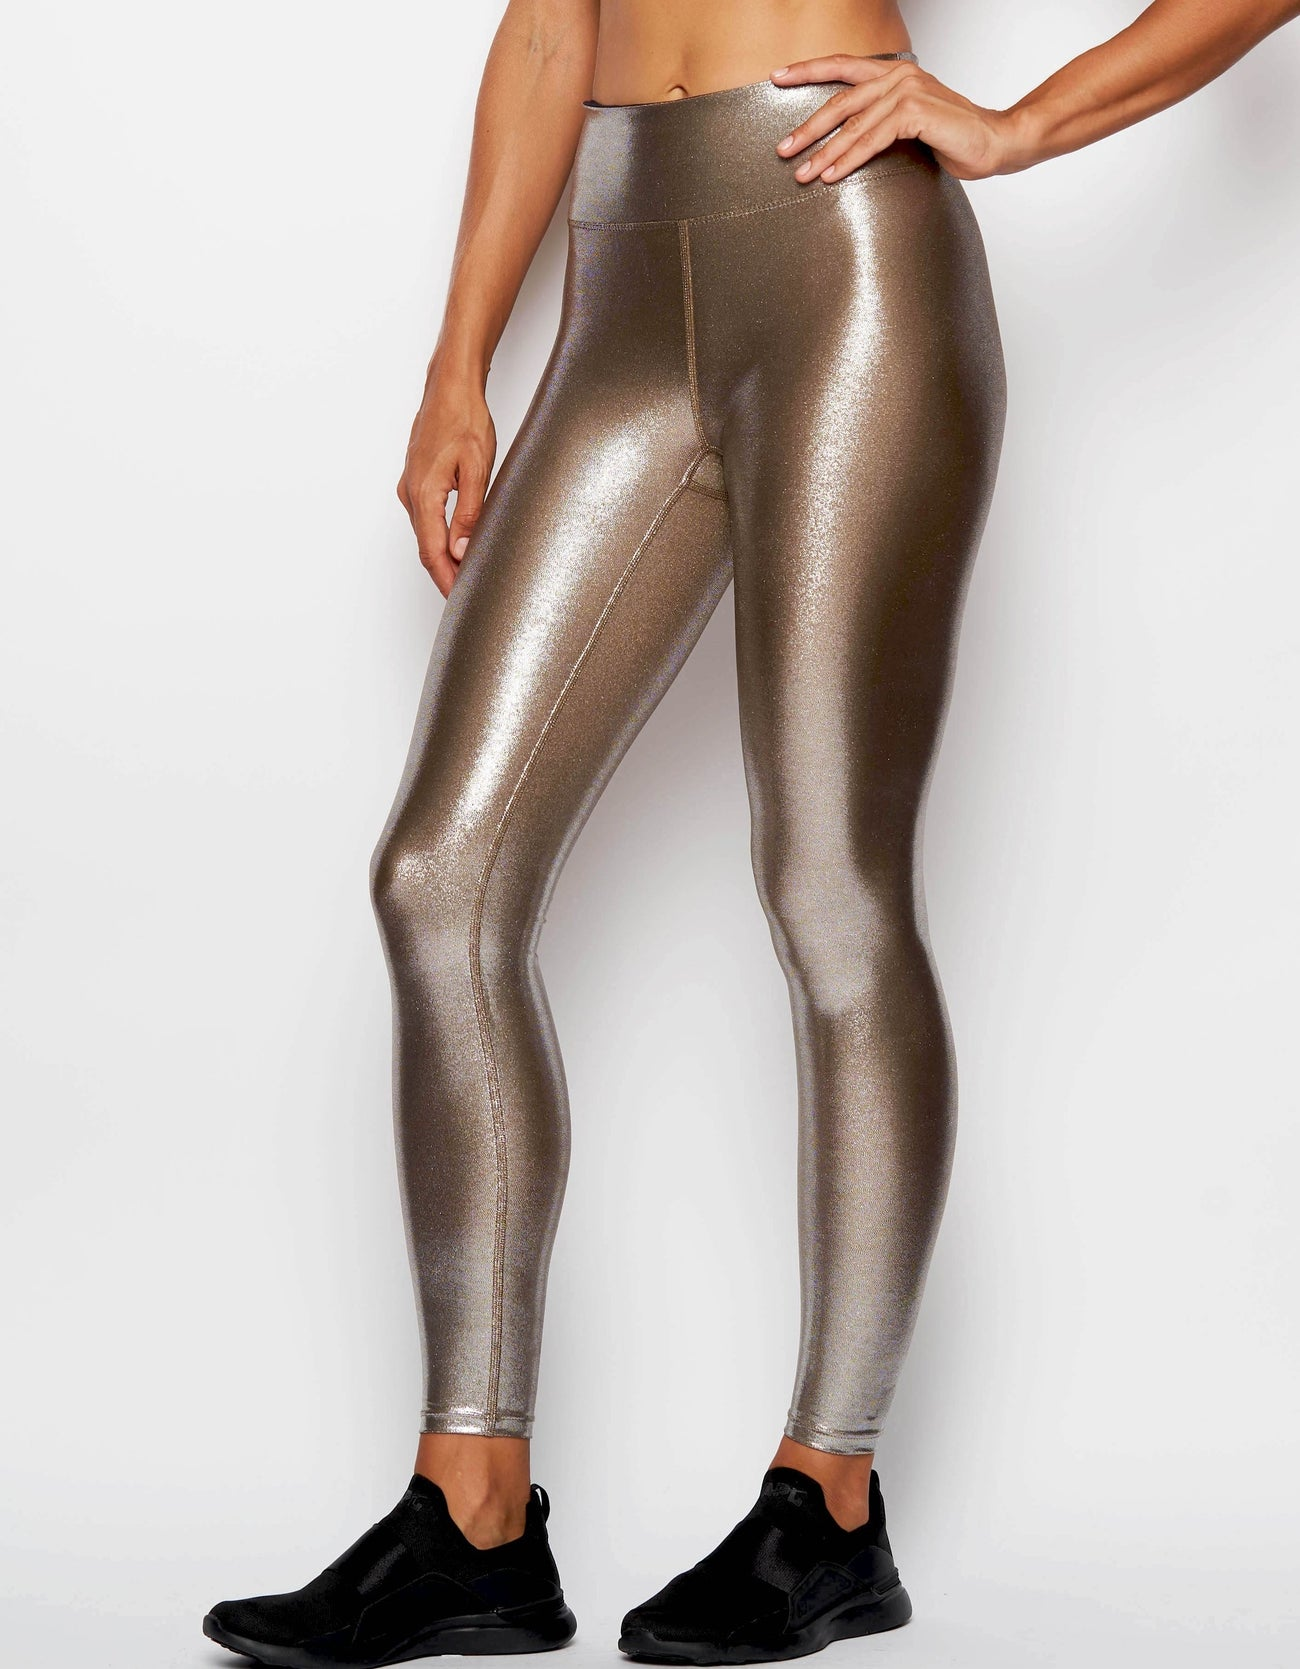 Marvel Legging in Quartz